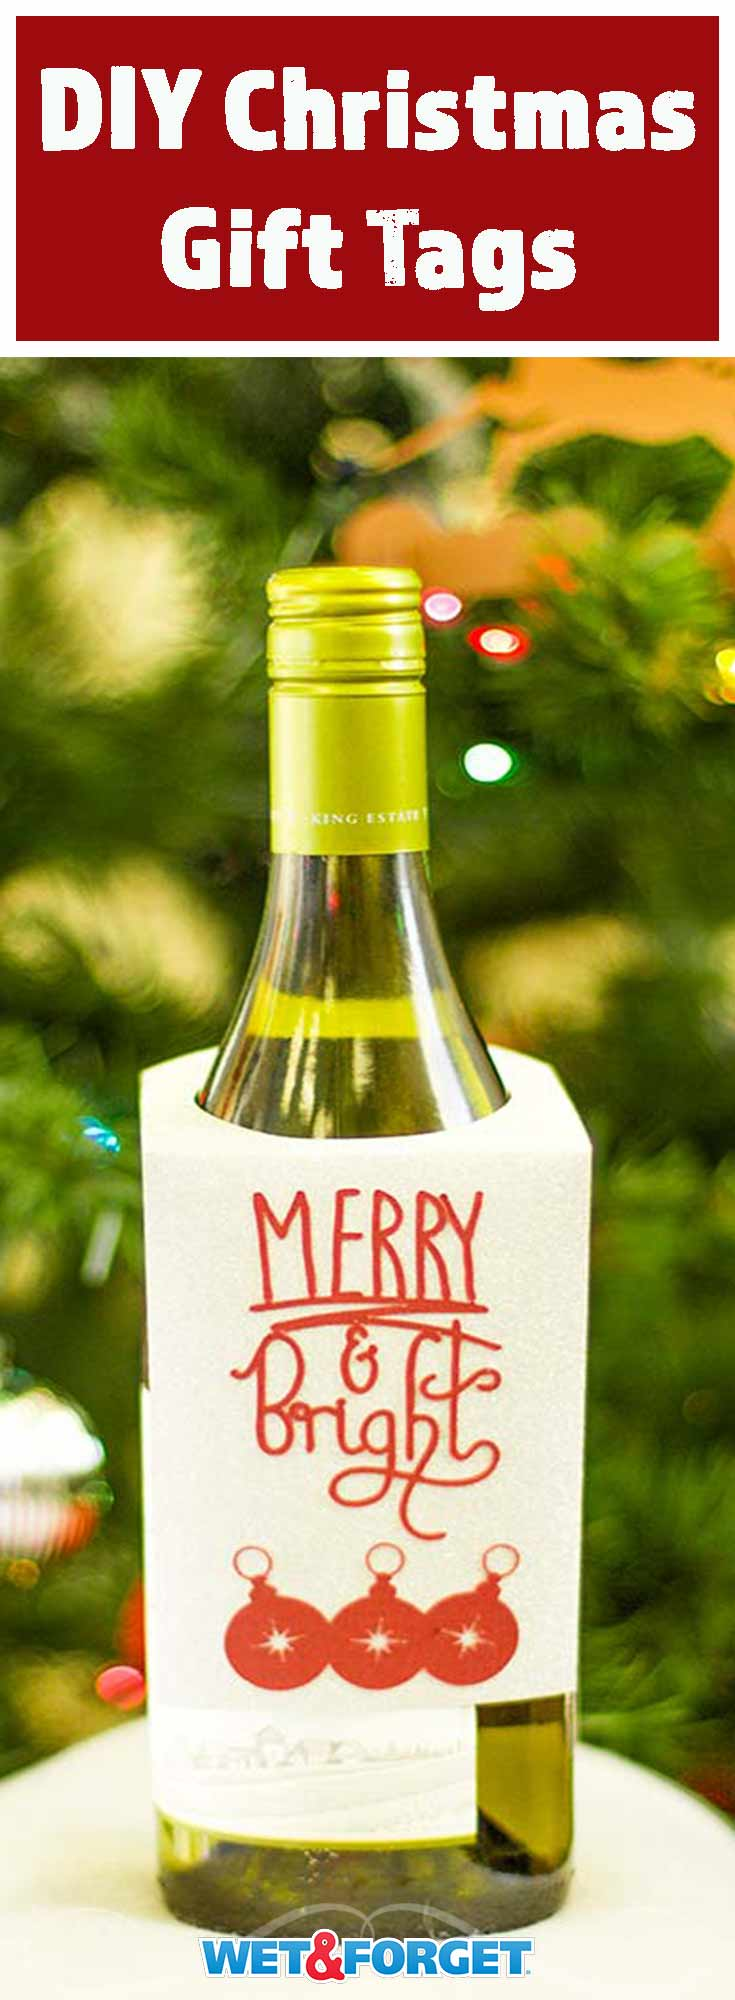 Christmas is right around the corner! Learn how to make your own wine bottle hang tag and other Christmas gift tags with our easy tutorials!